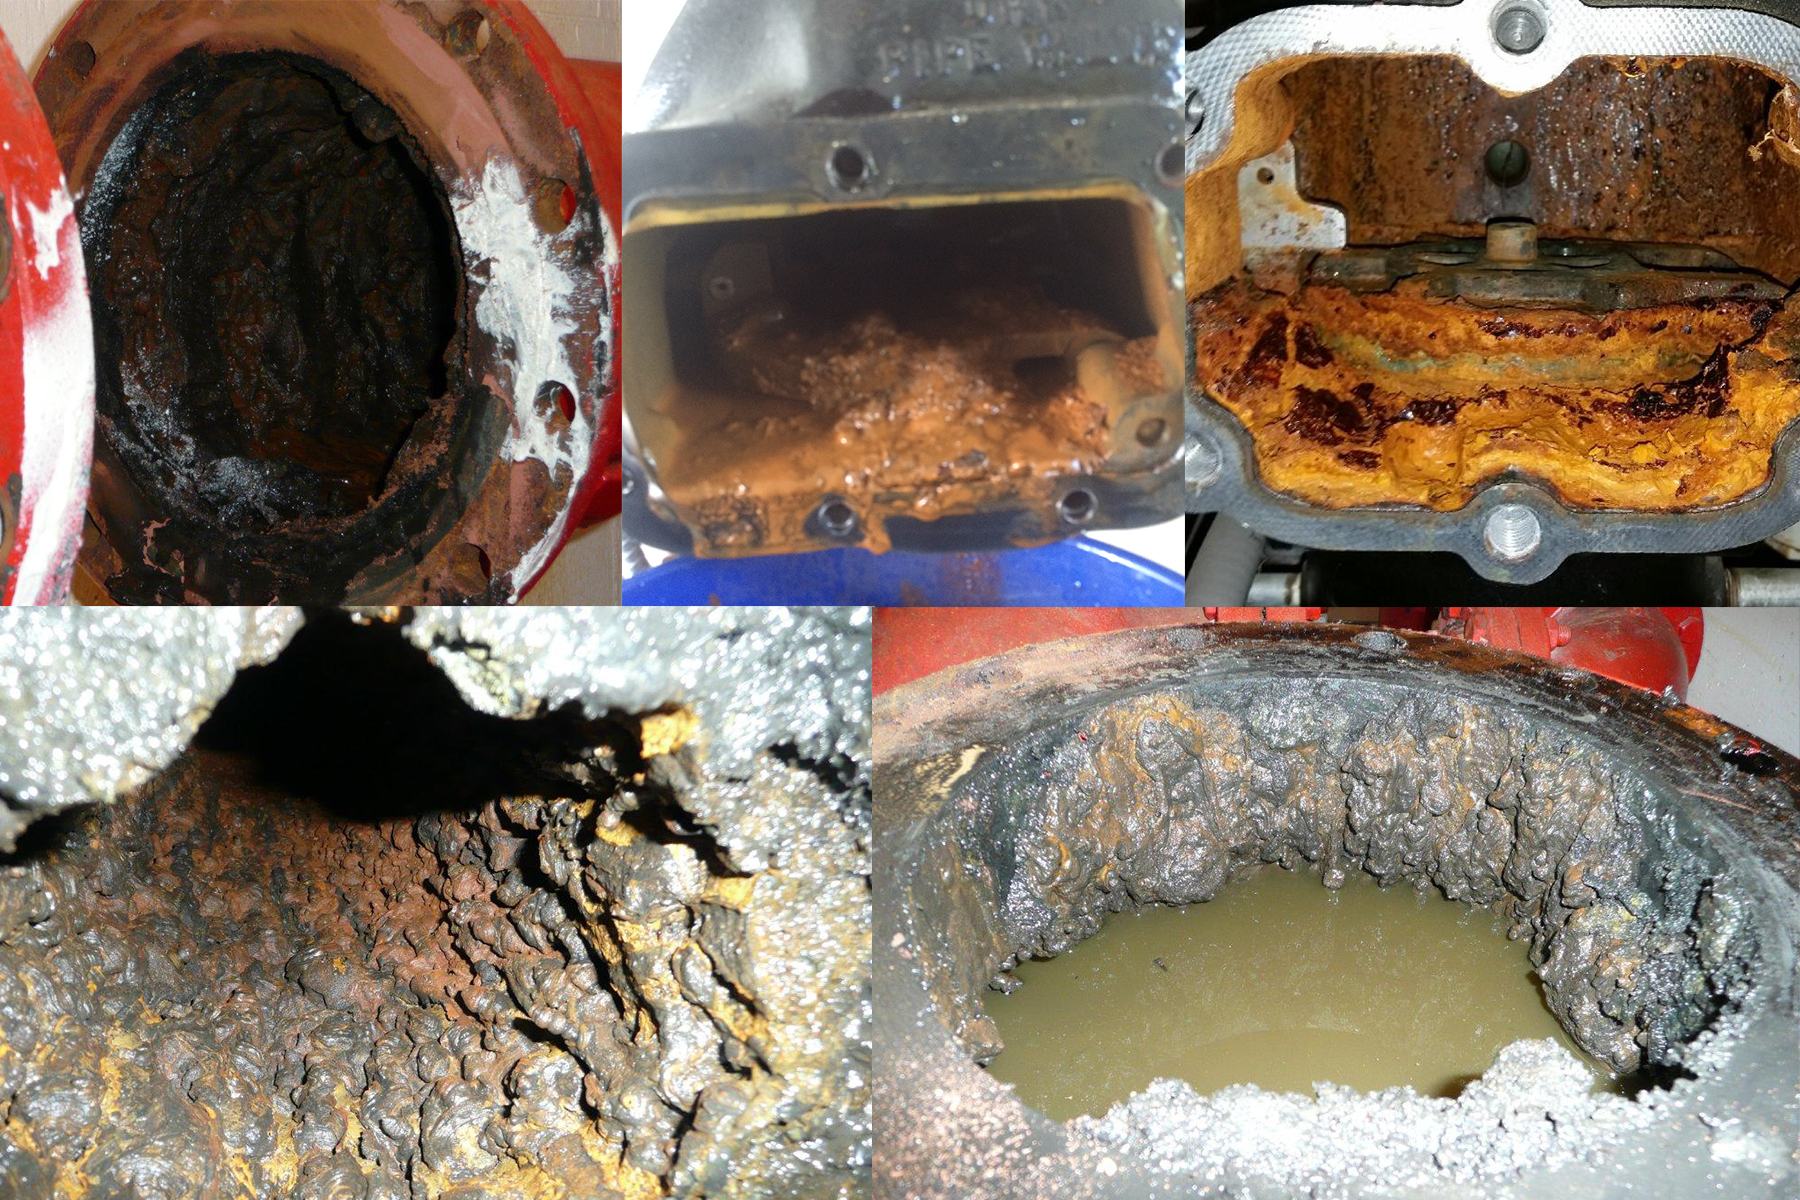 Examples of piping buildup with slime, sludge, rust, etc.